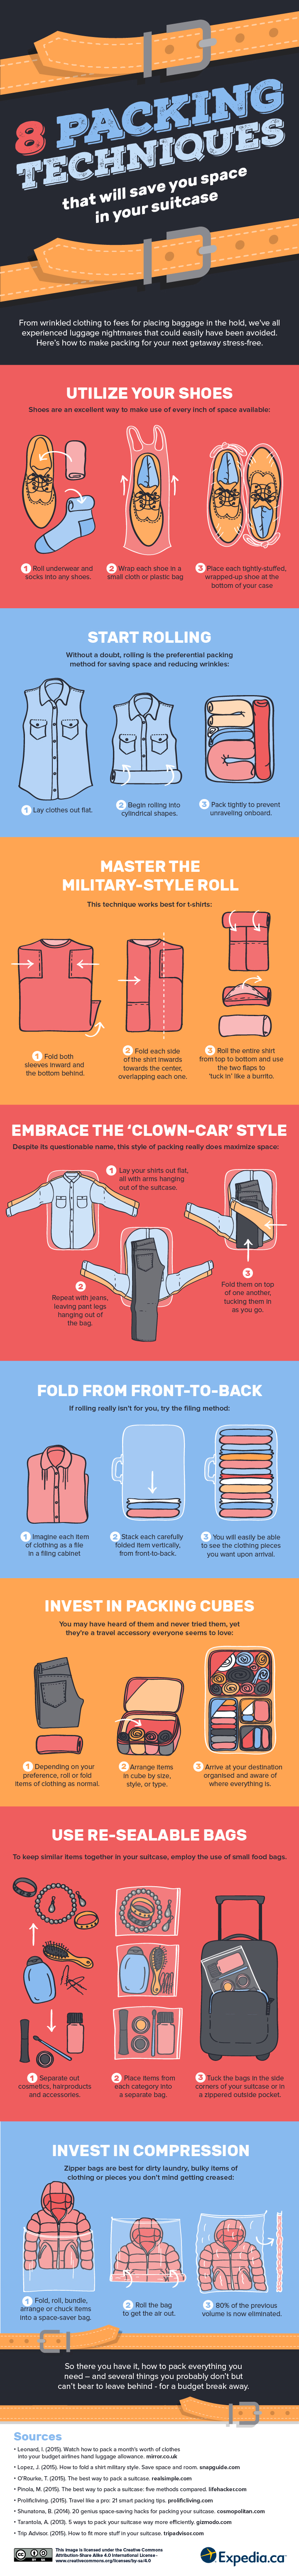 8 effective packing techniques that save space in your suitcase